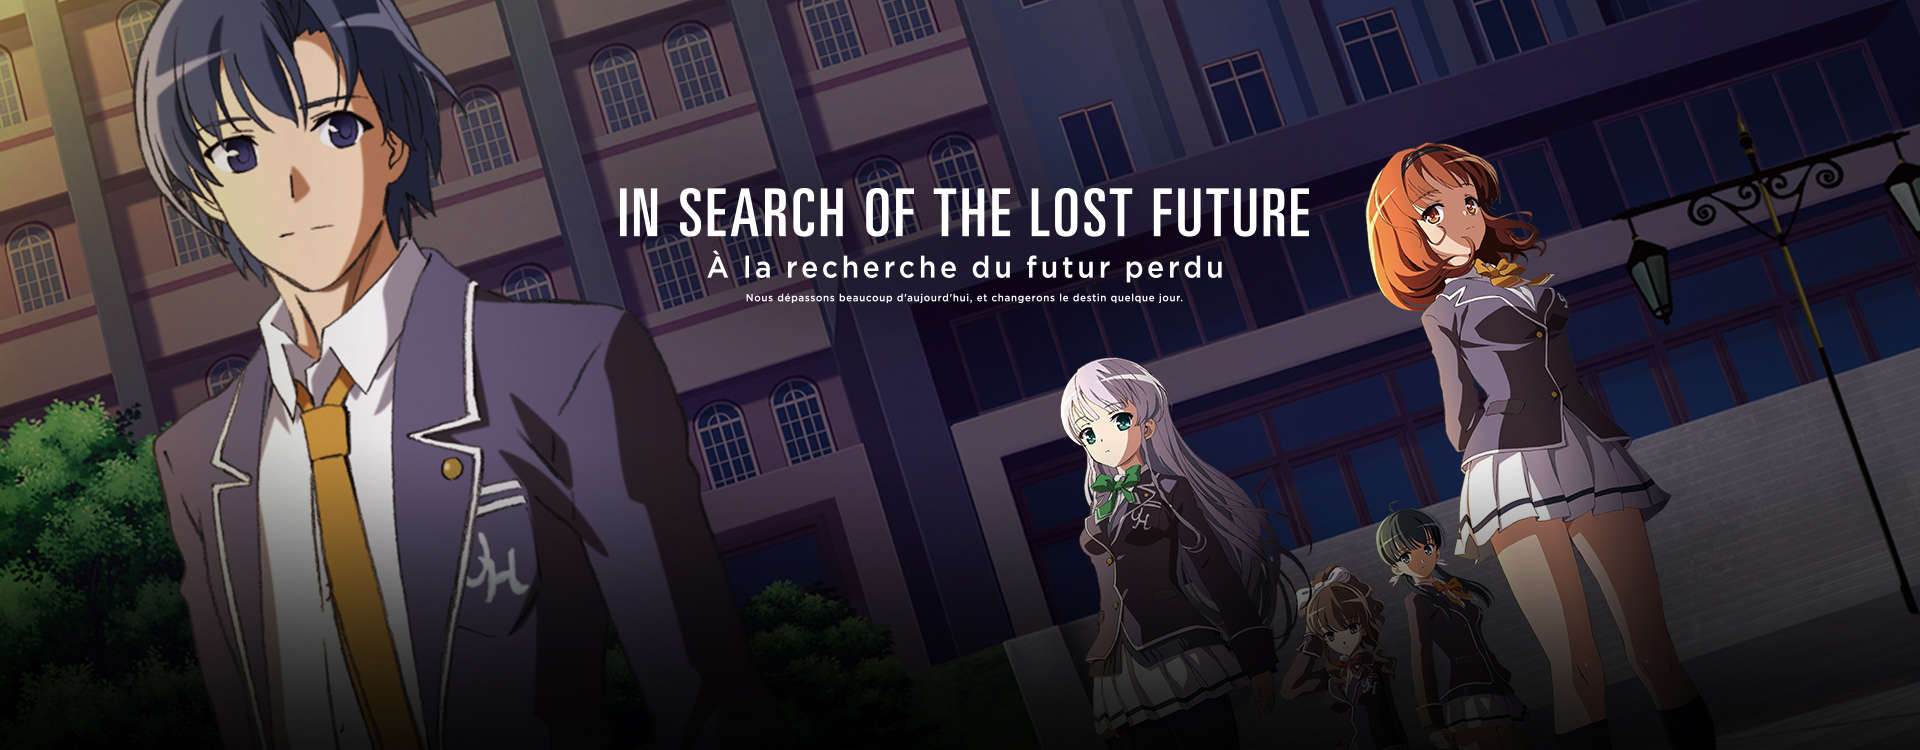 In Search of the Lost Future